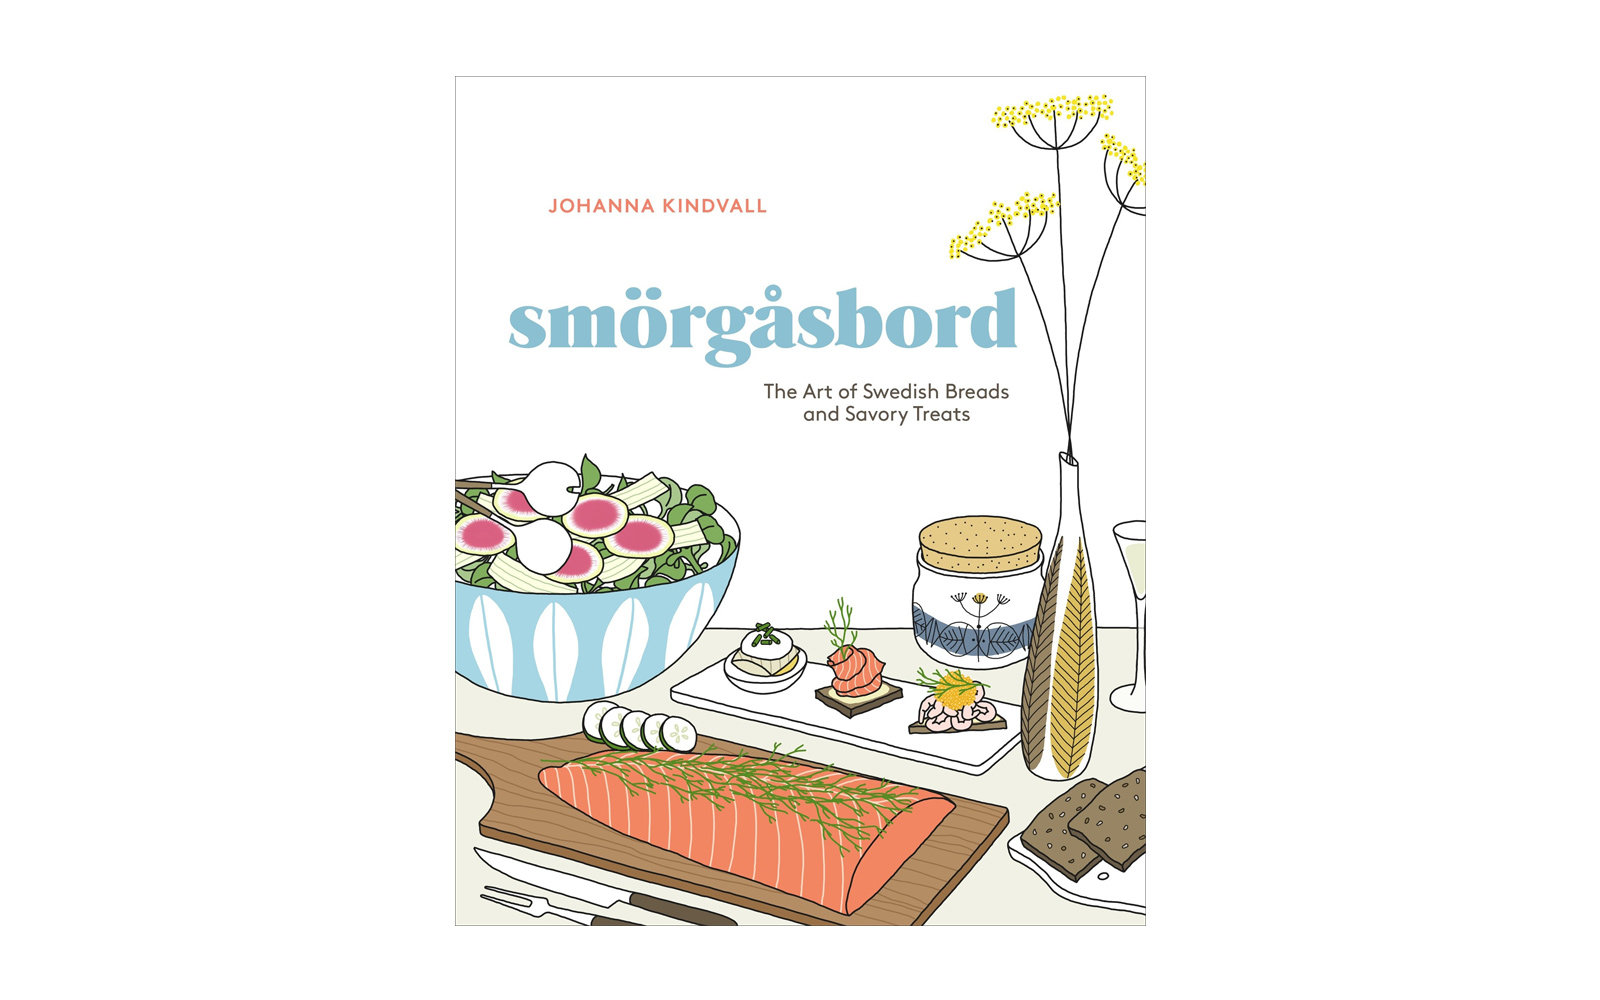 Smorgasbord, The Art of Swedish Breads and Savory Treats, by Johanna Kindvall